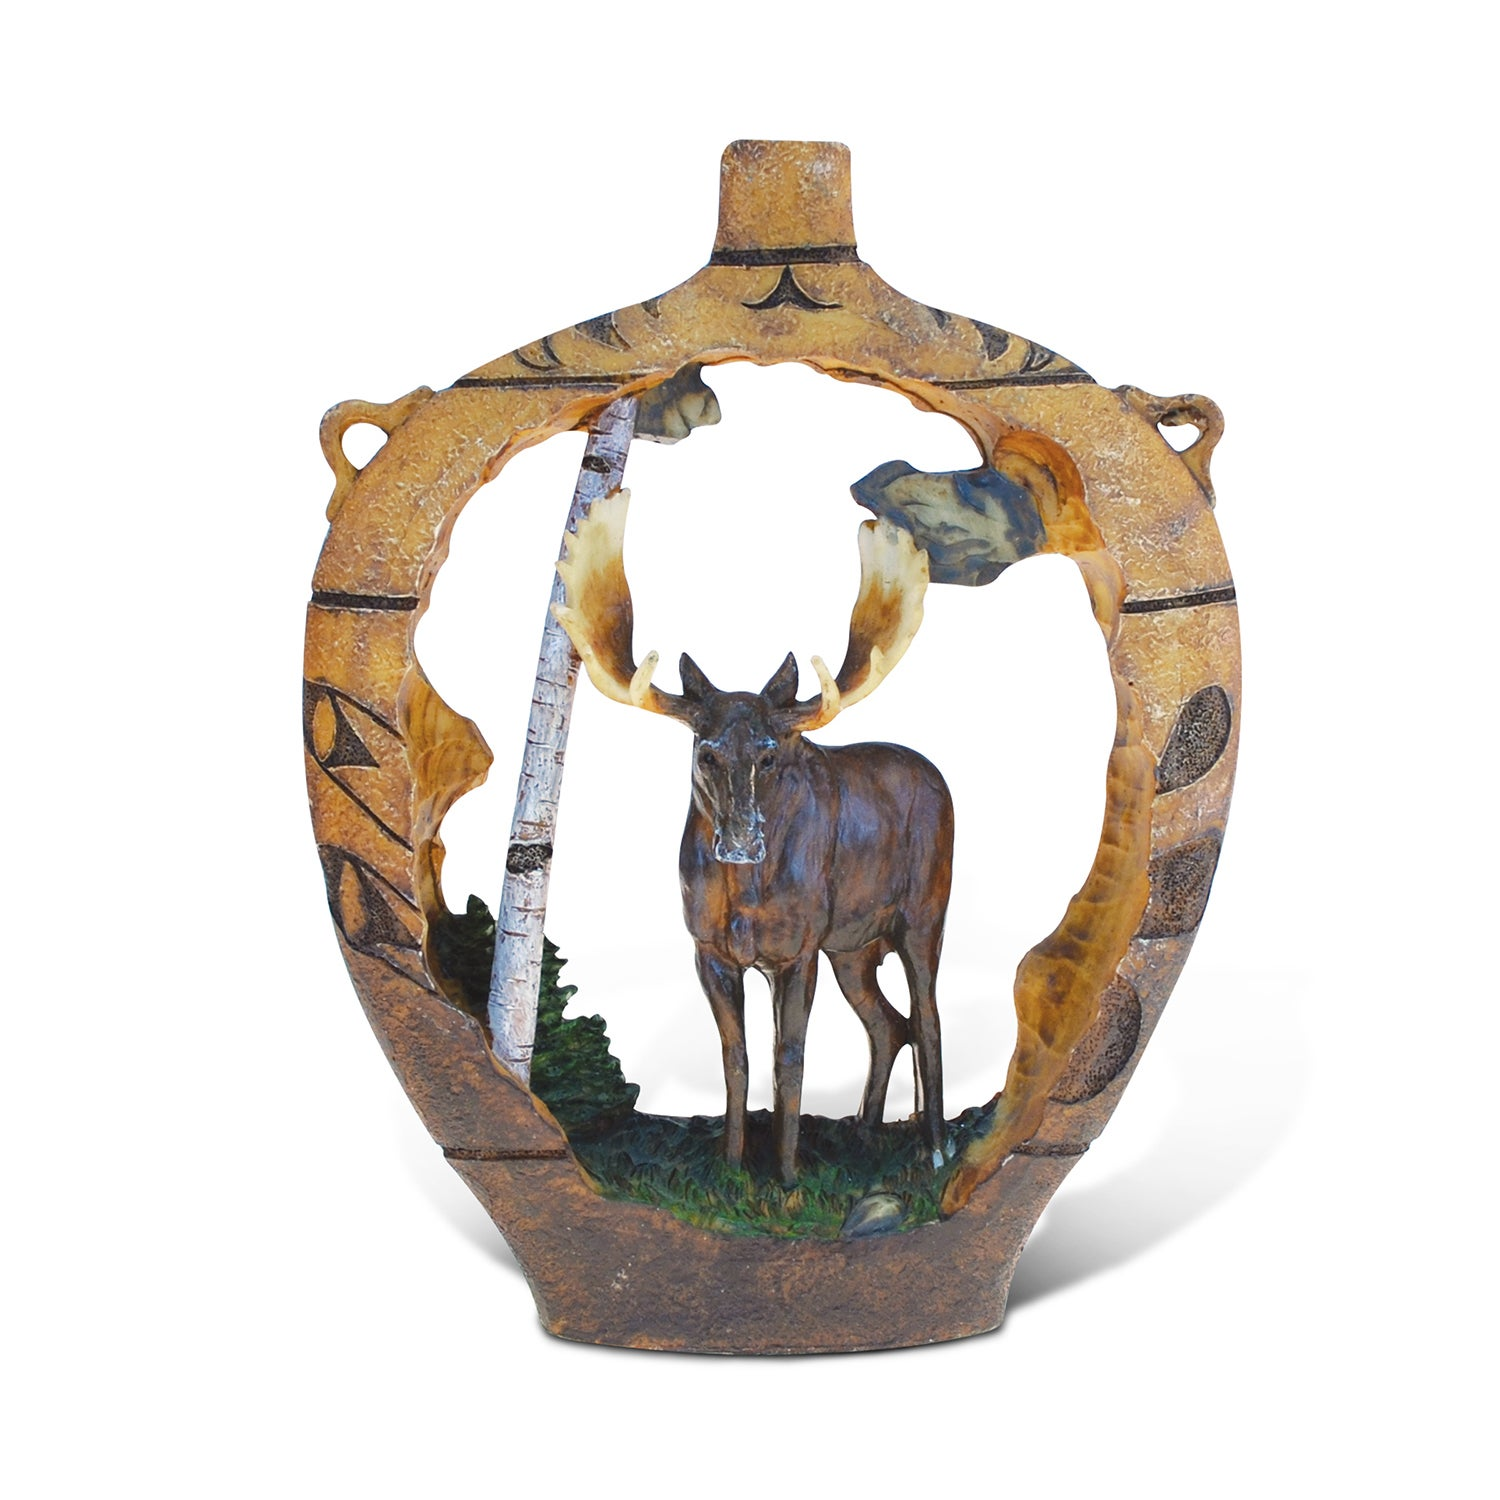 Puzzled The Wild Collection Native Pottery Moose Decor Sculpture Brown